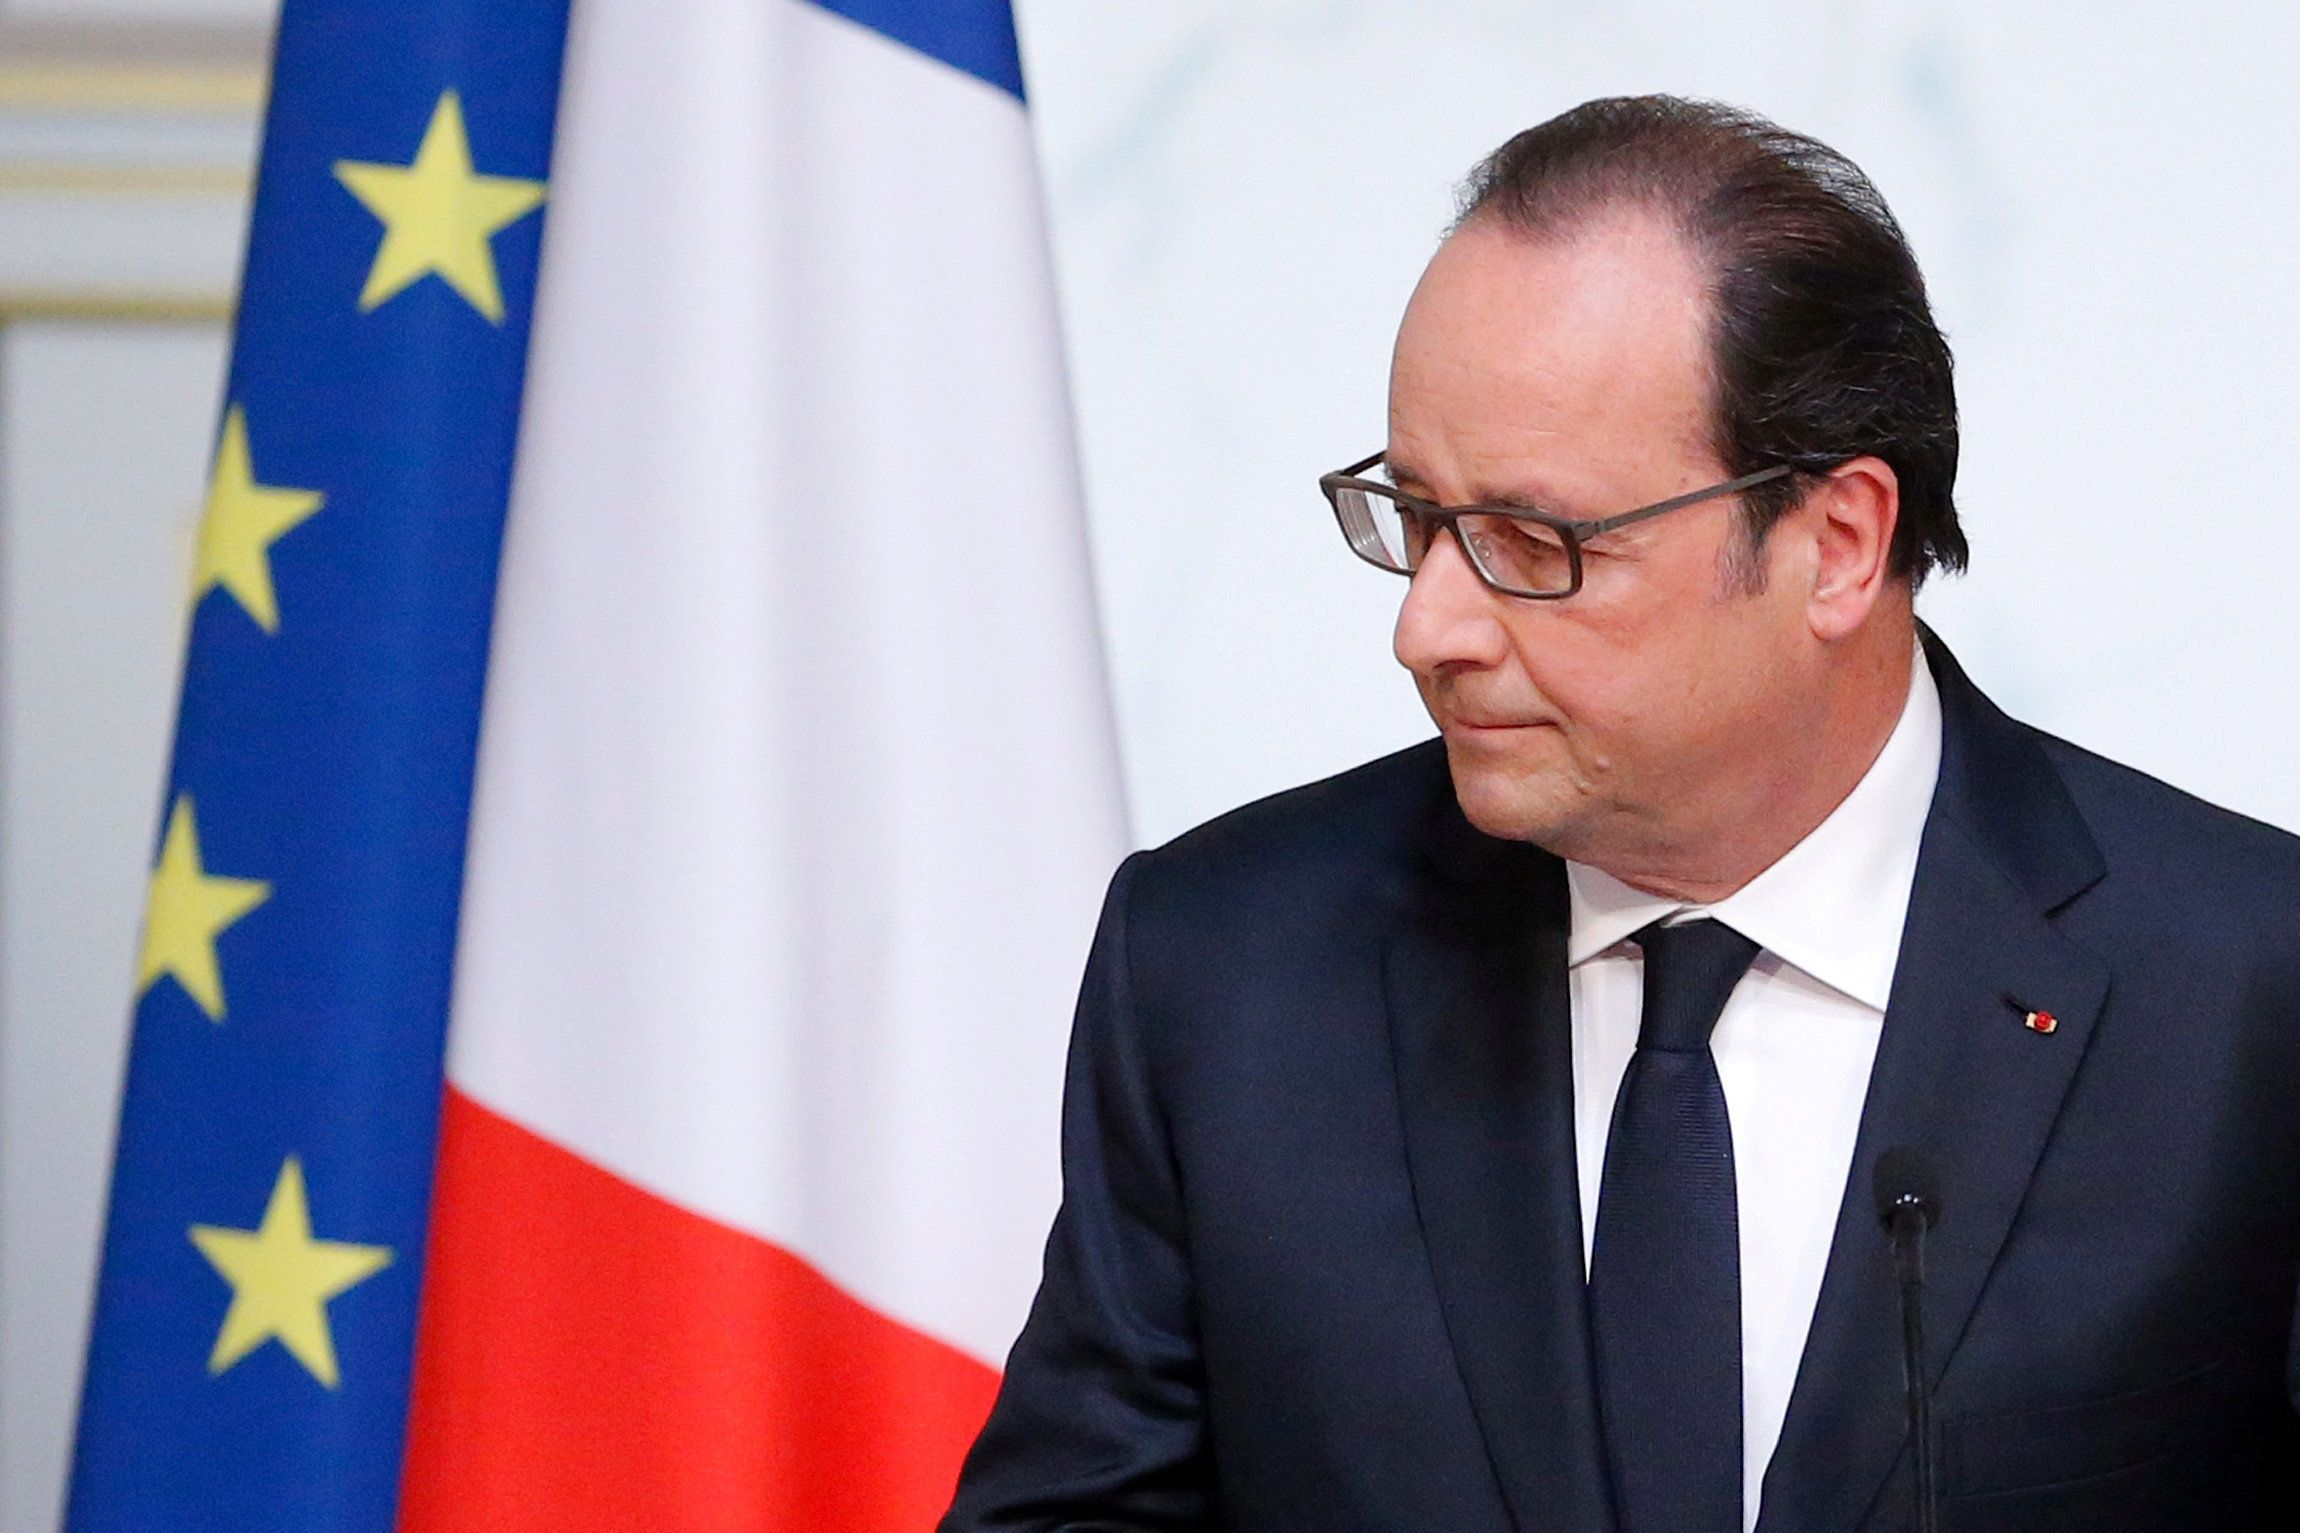 As made clear by angry posts on social media, French taxpayers are not pleased with their leader's...